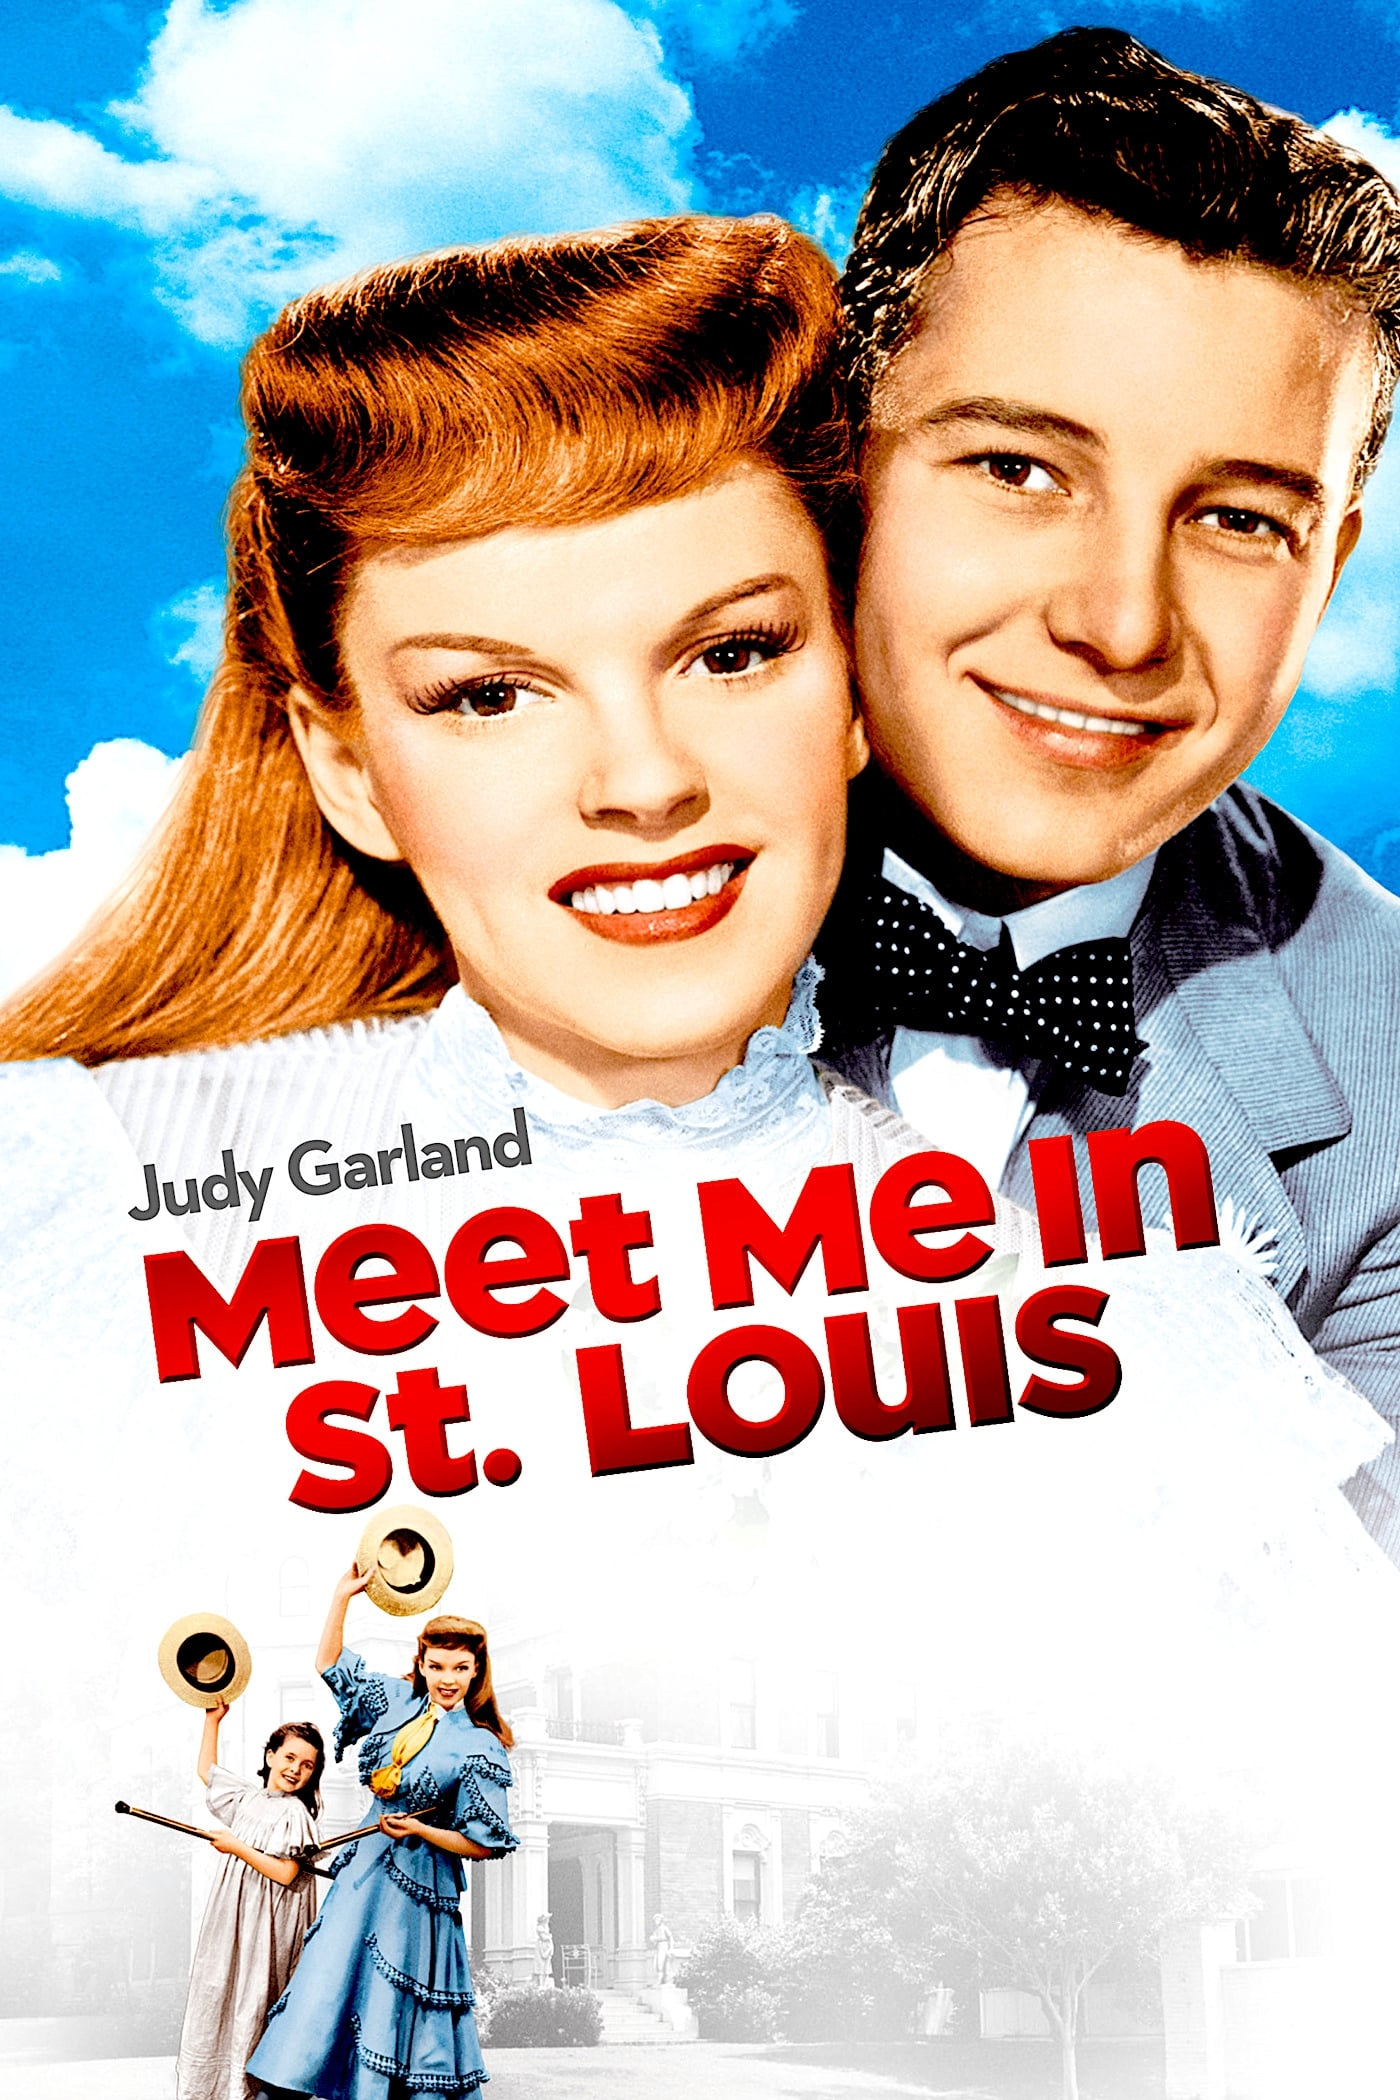 meet me st louis full movie